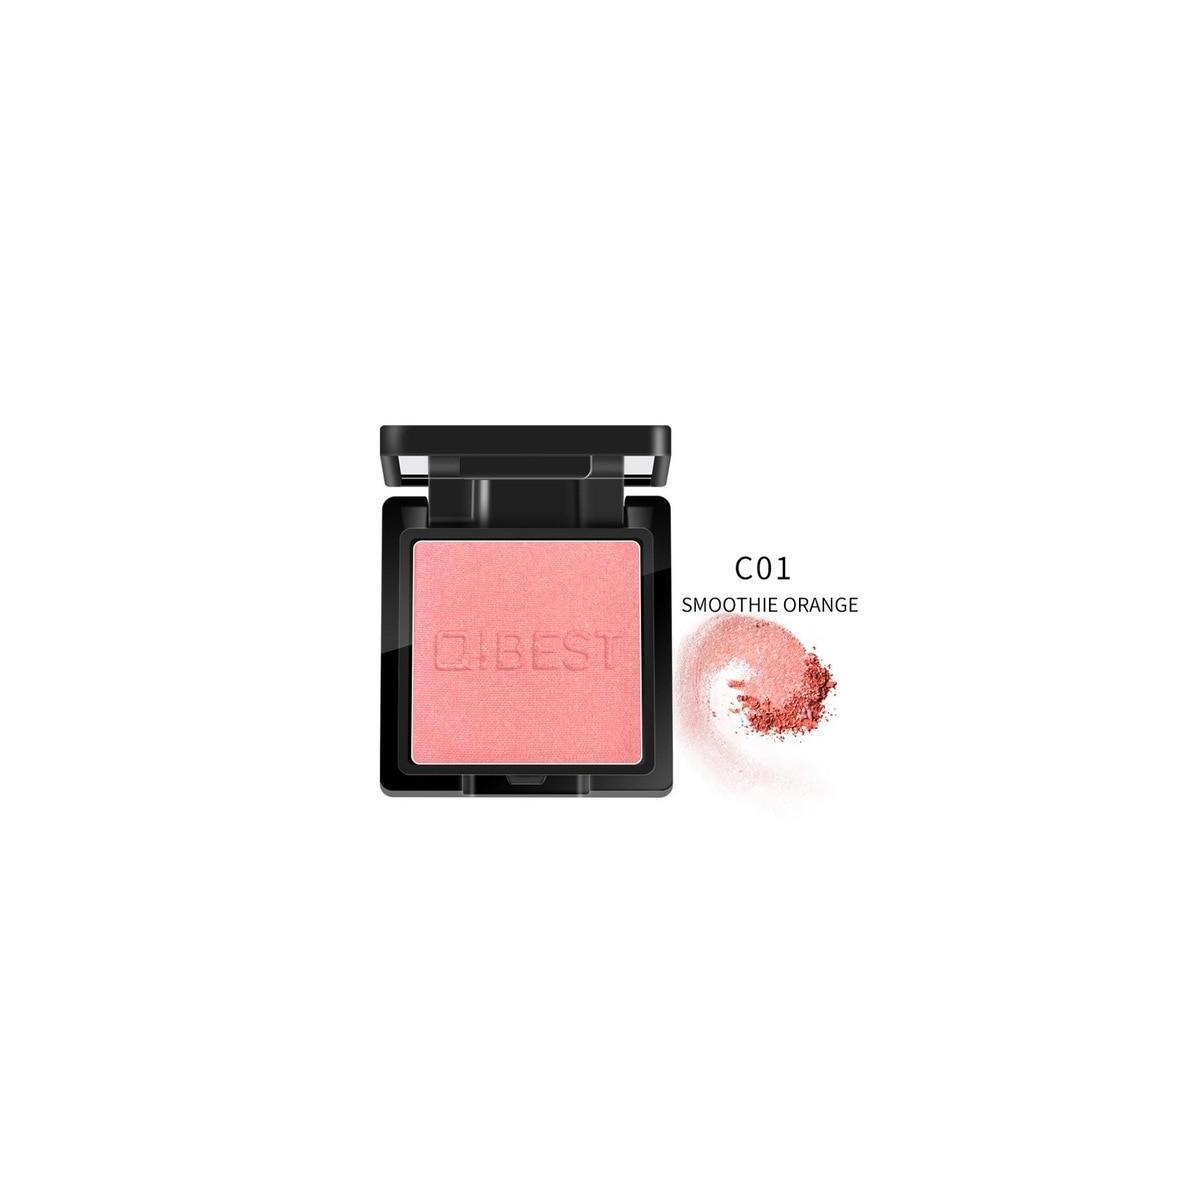 QIBEST Blush Peach Pallete, 1